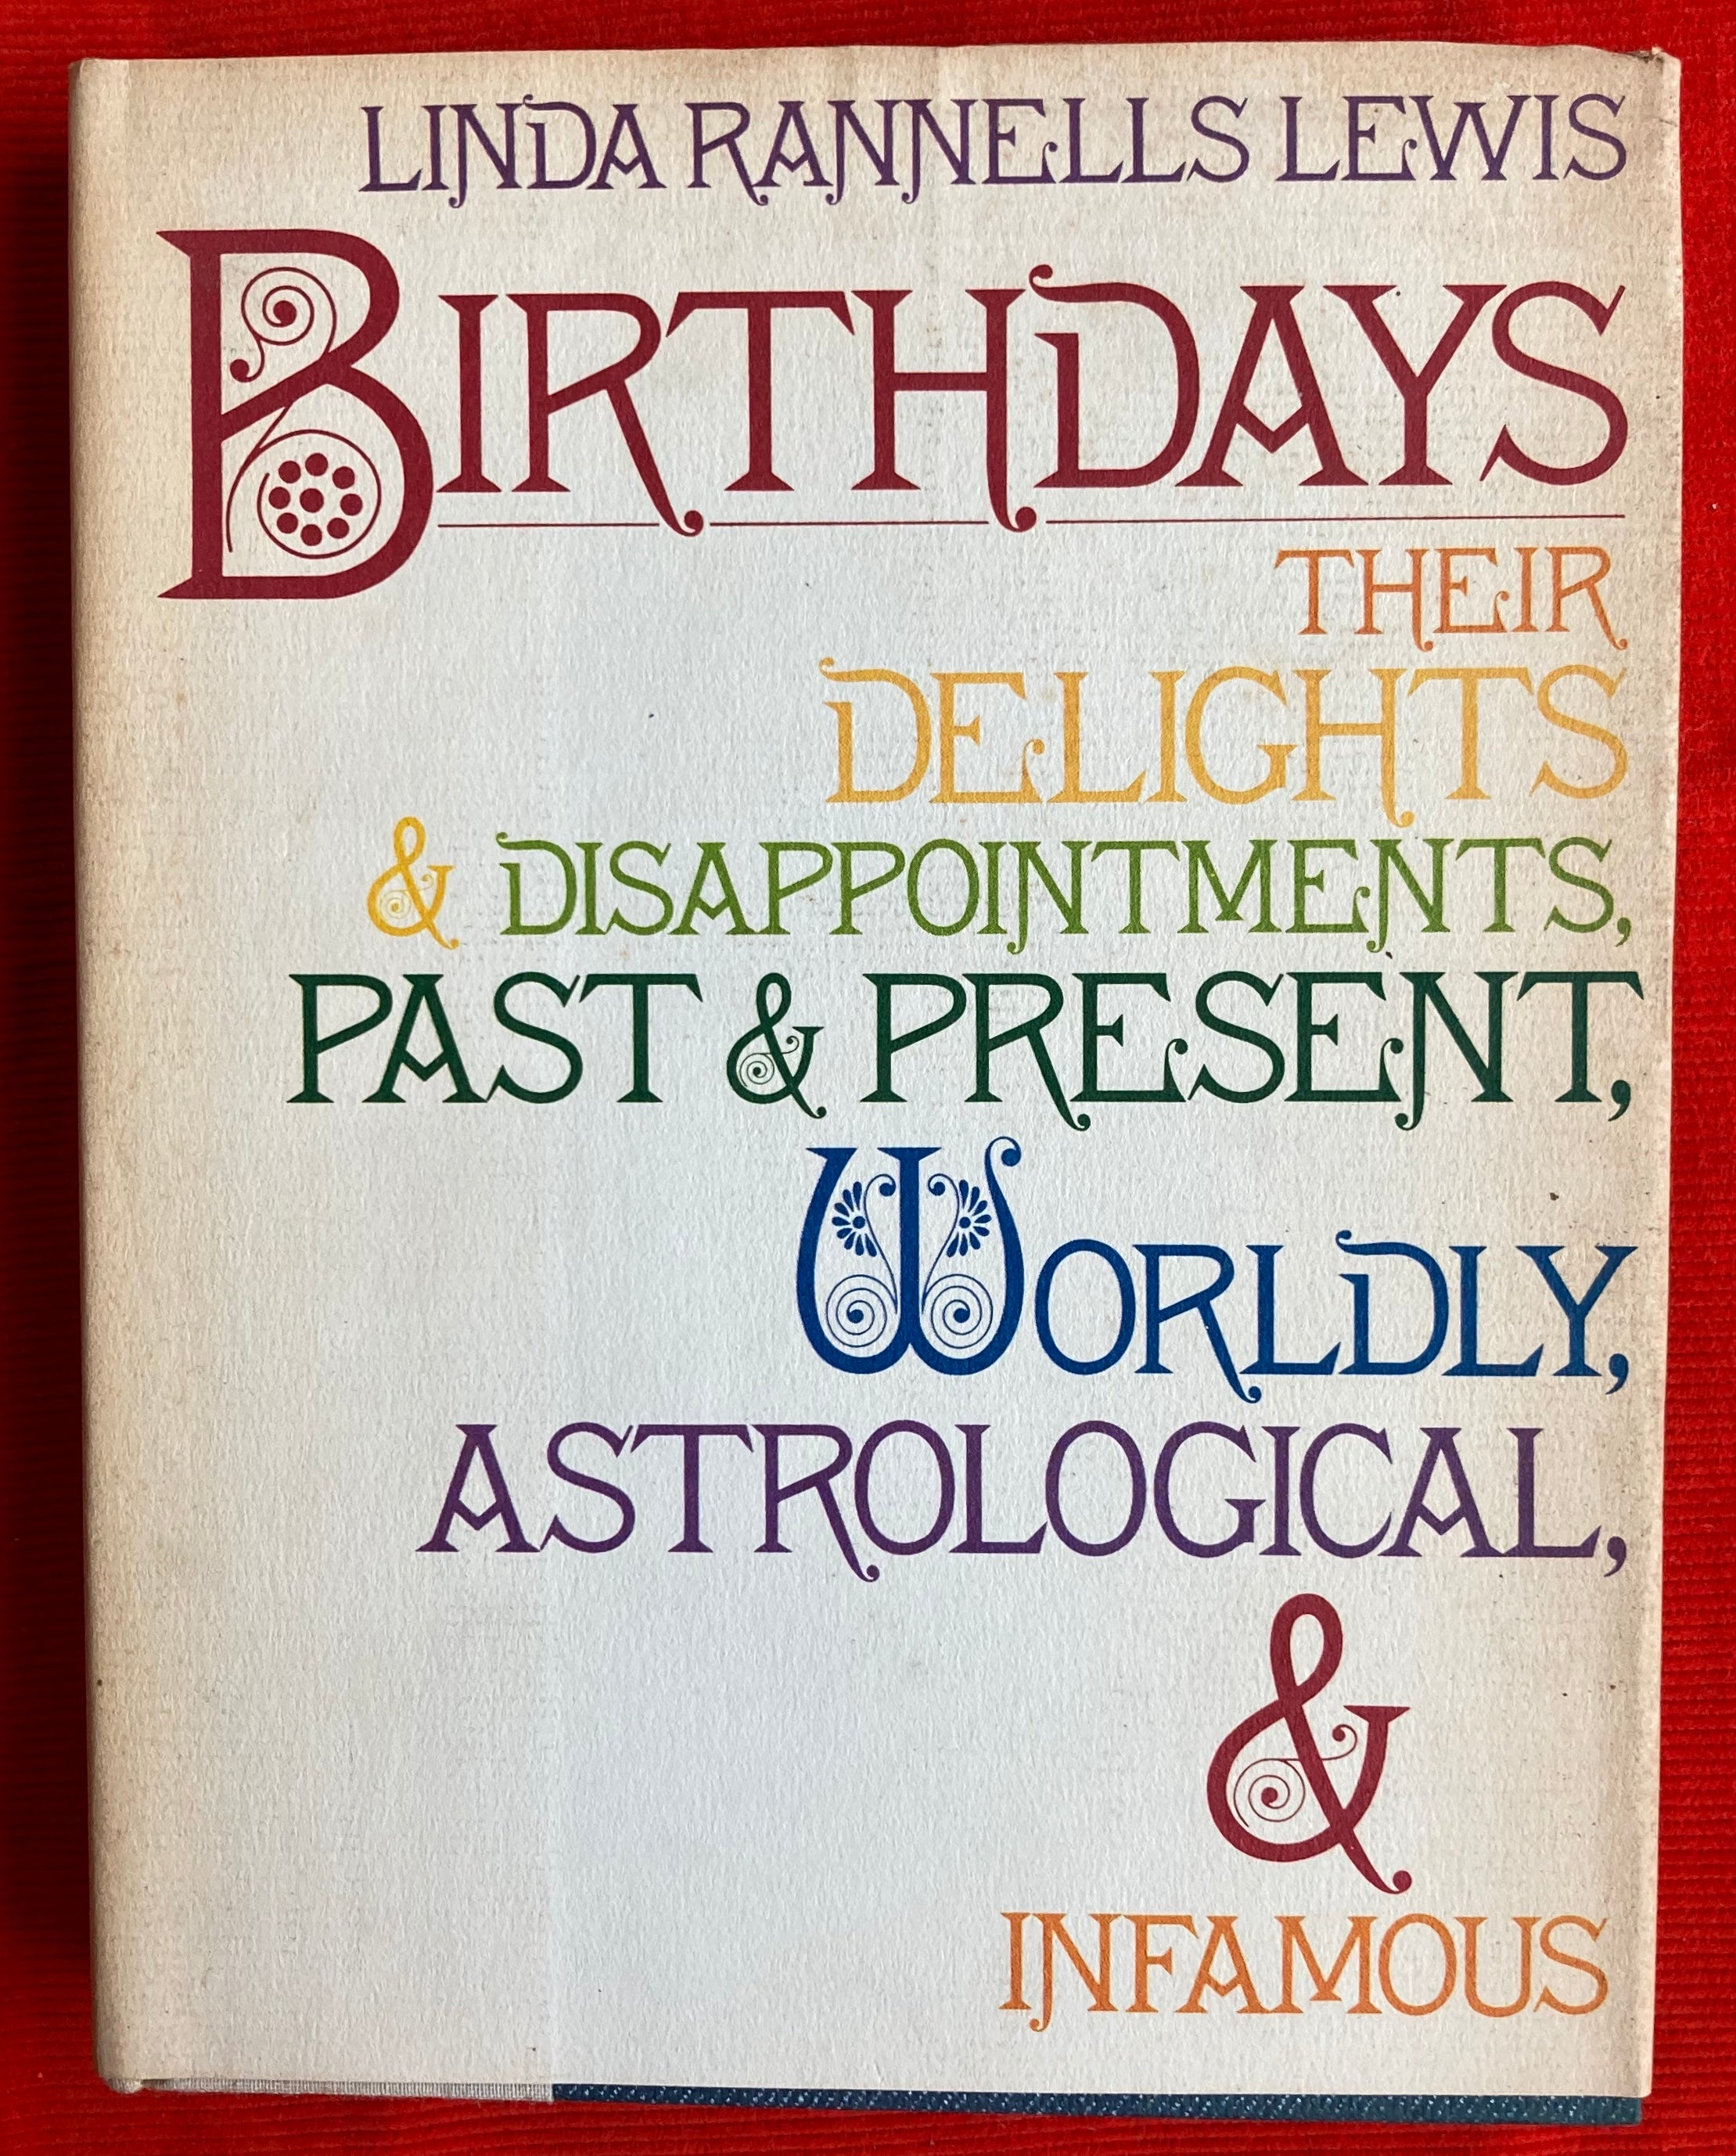 """Birthdays: Their delights, disappointments, past and present, worldly, astrological, and infamous"" By  Linda Rannells Lewis"